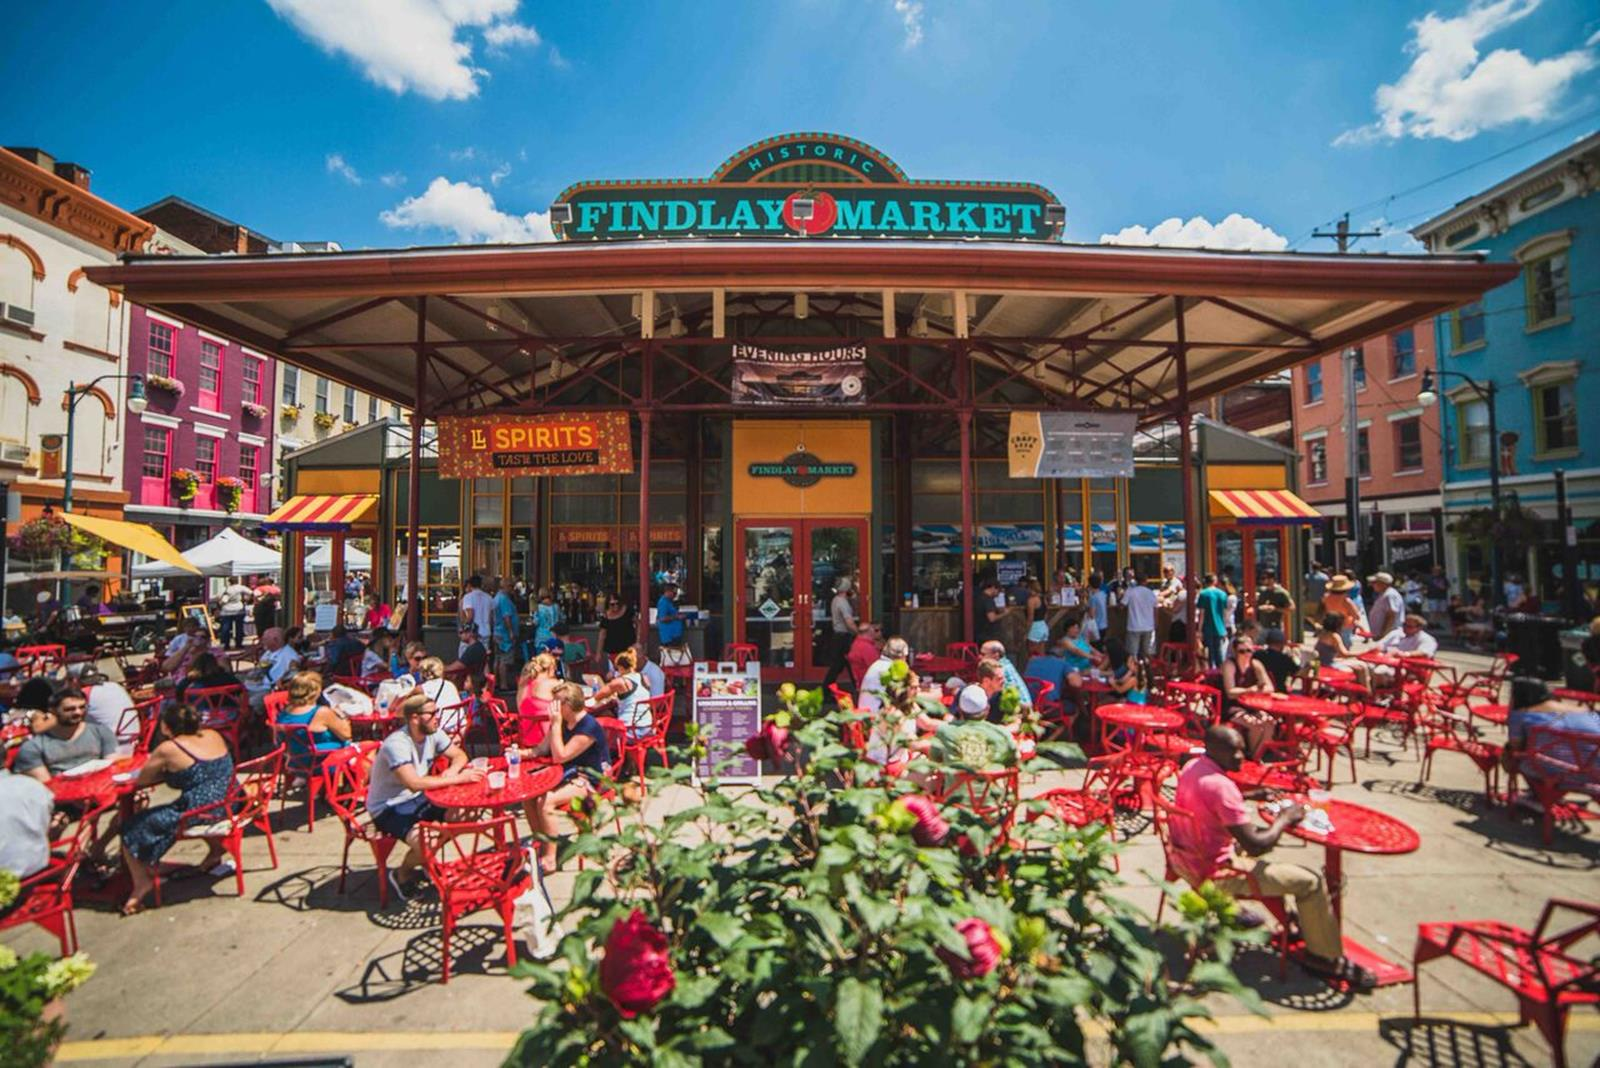 Cincinnati Findlay Farmers Market